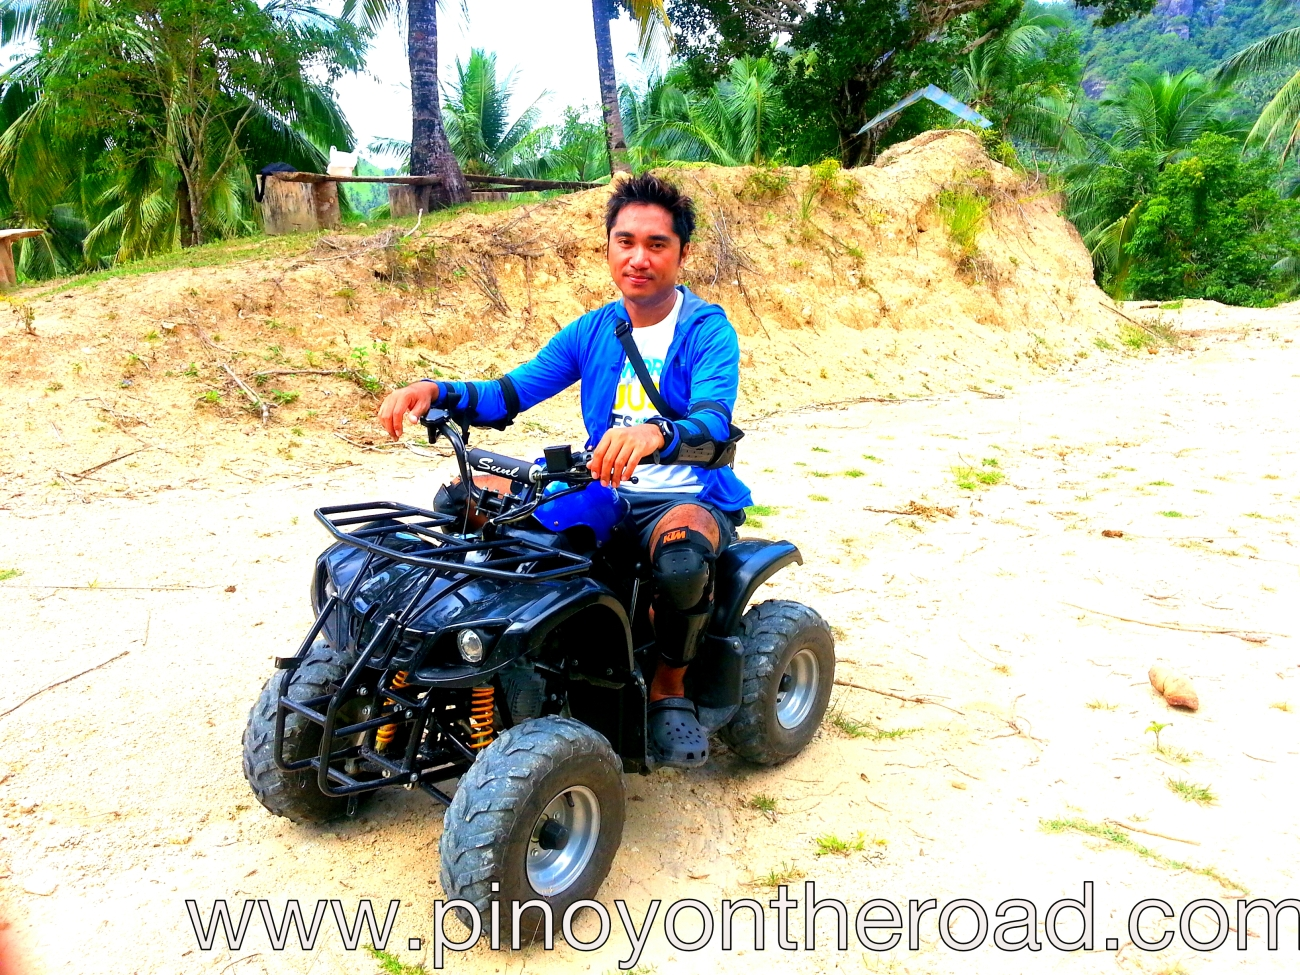 atv ride, more fun in the philippines